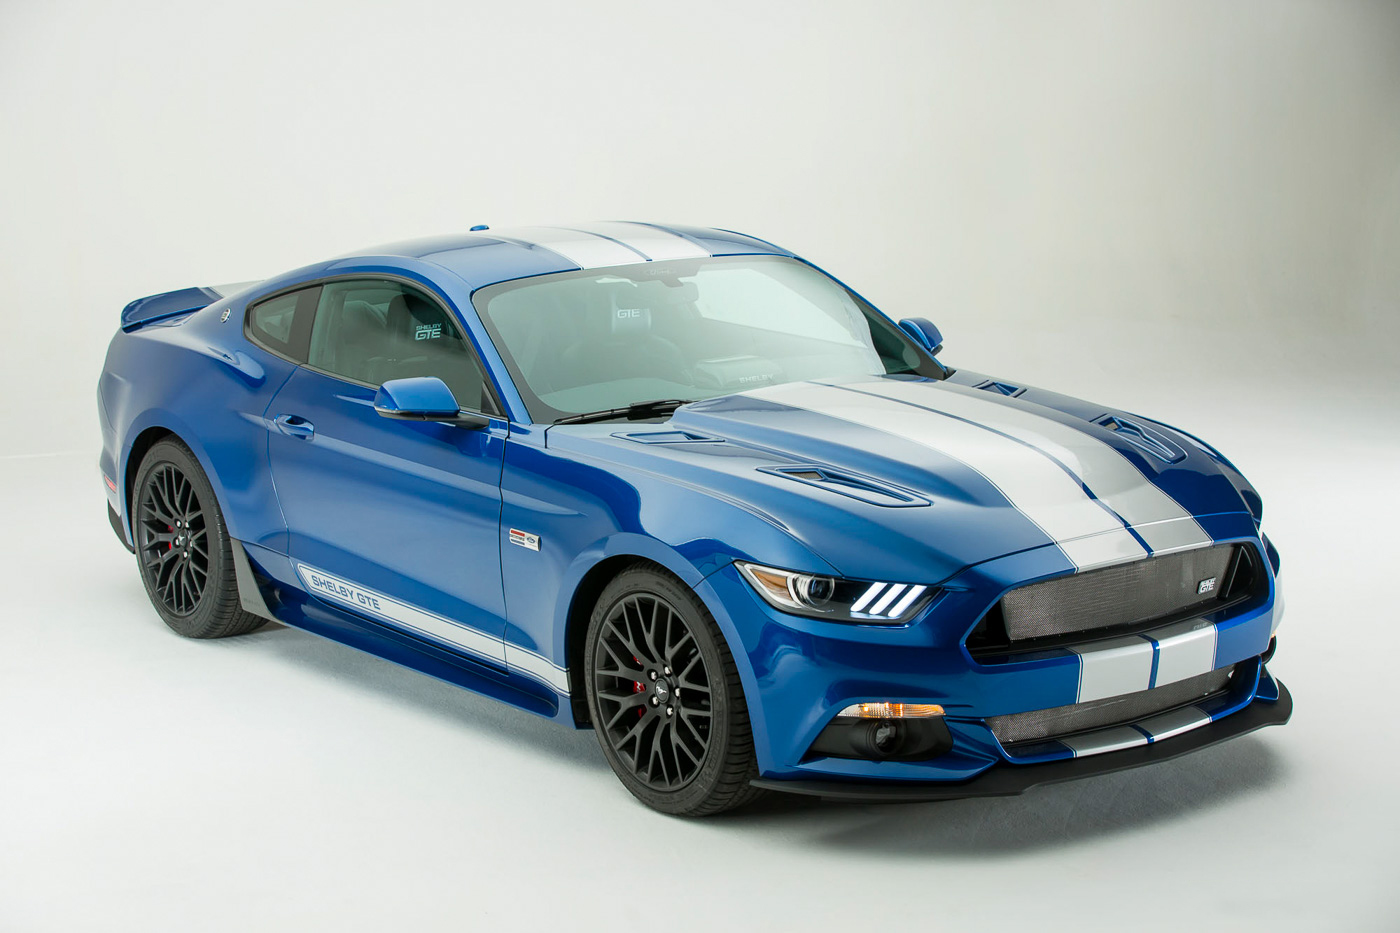 New Amp Powerful 2017 Shelby Mustang Gte Is Challenging His